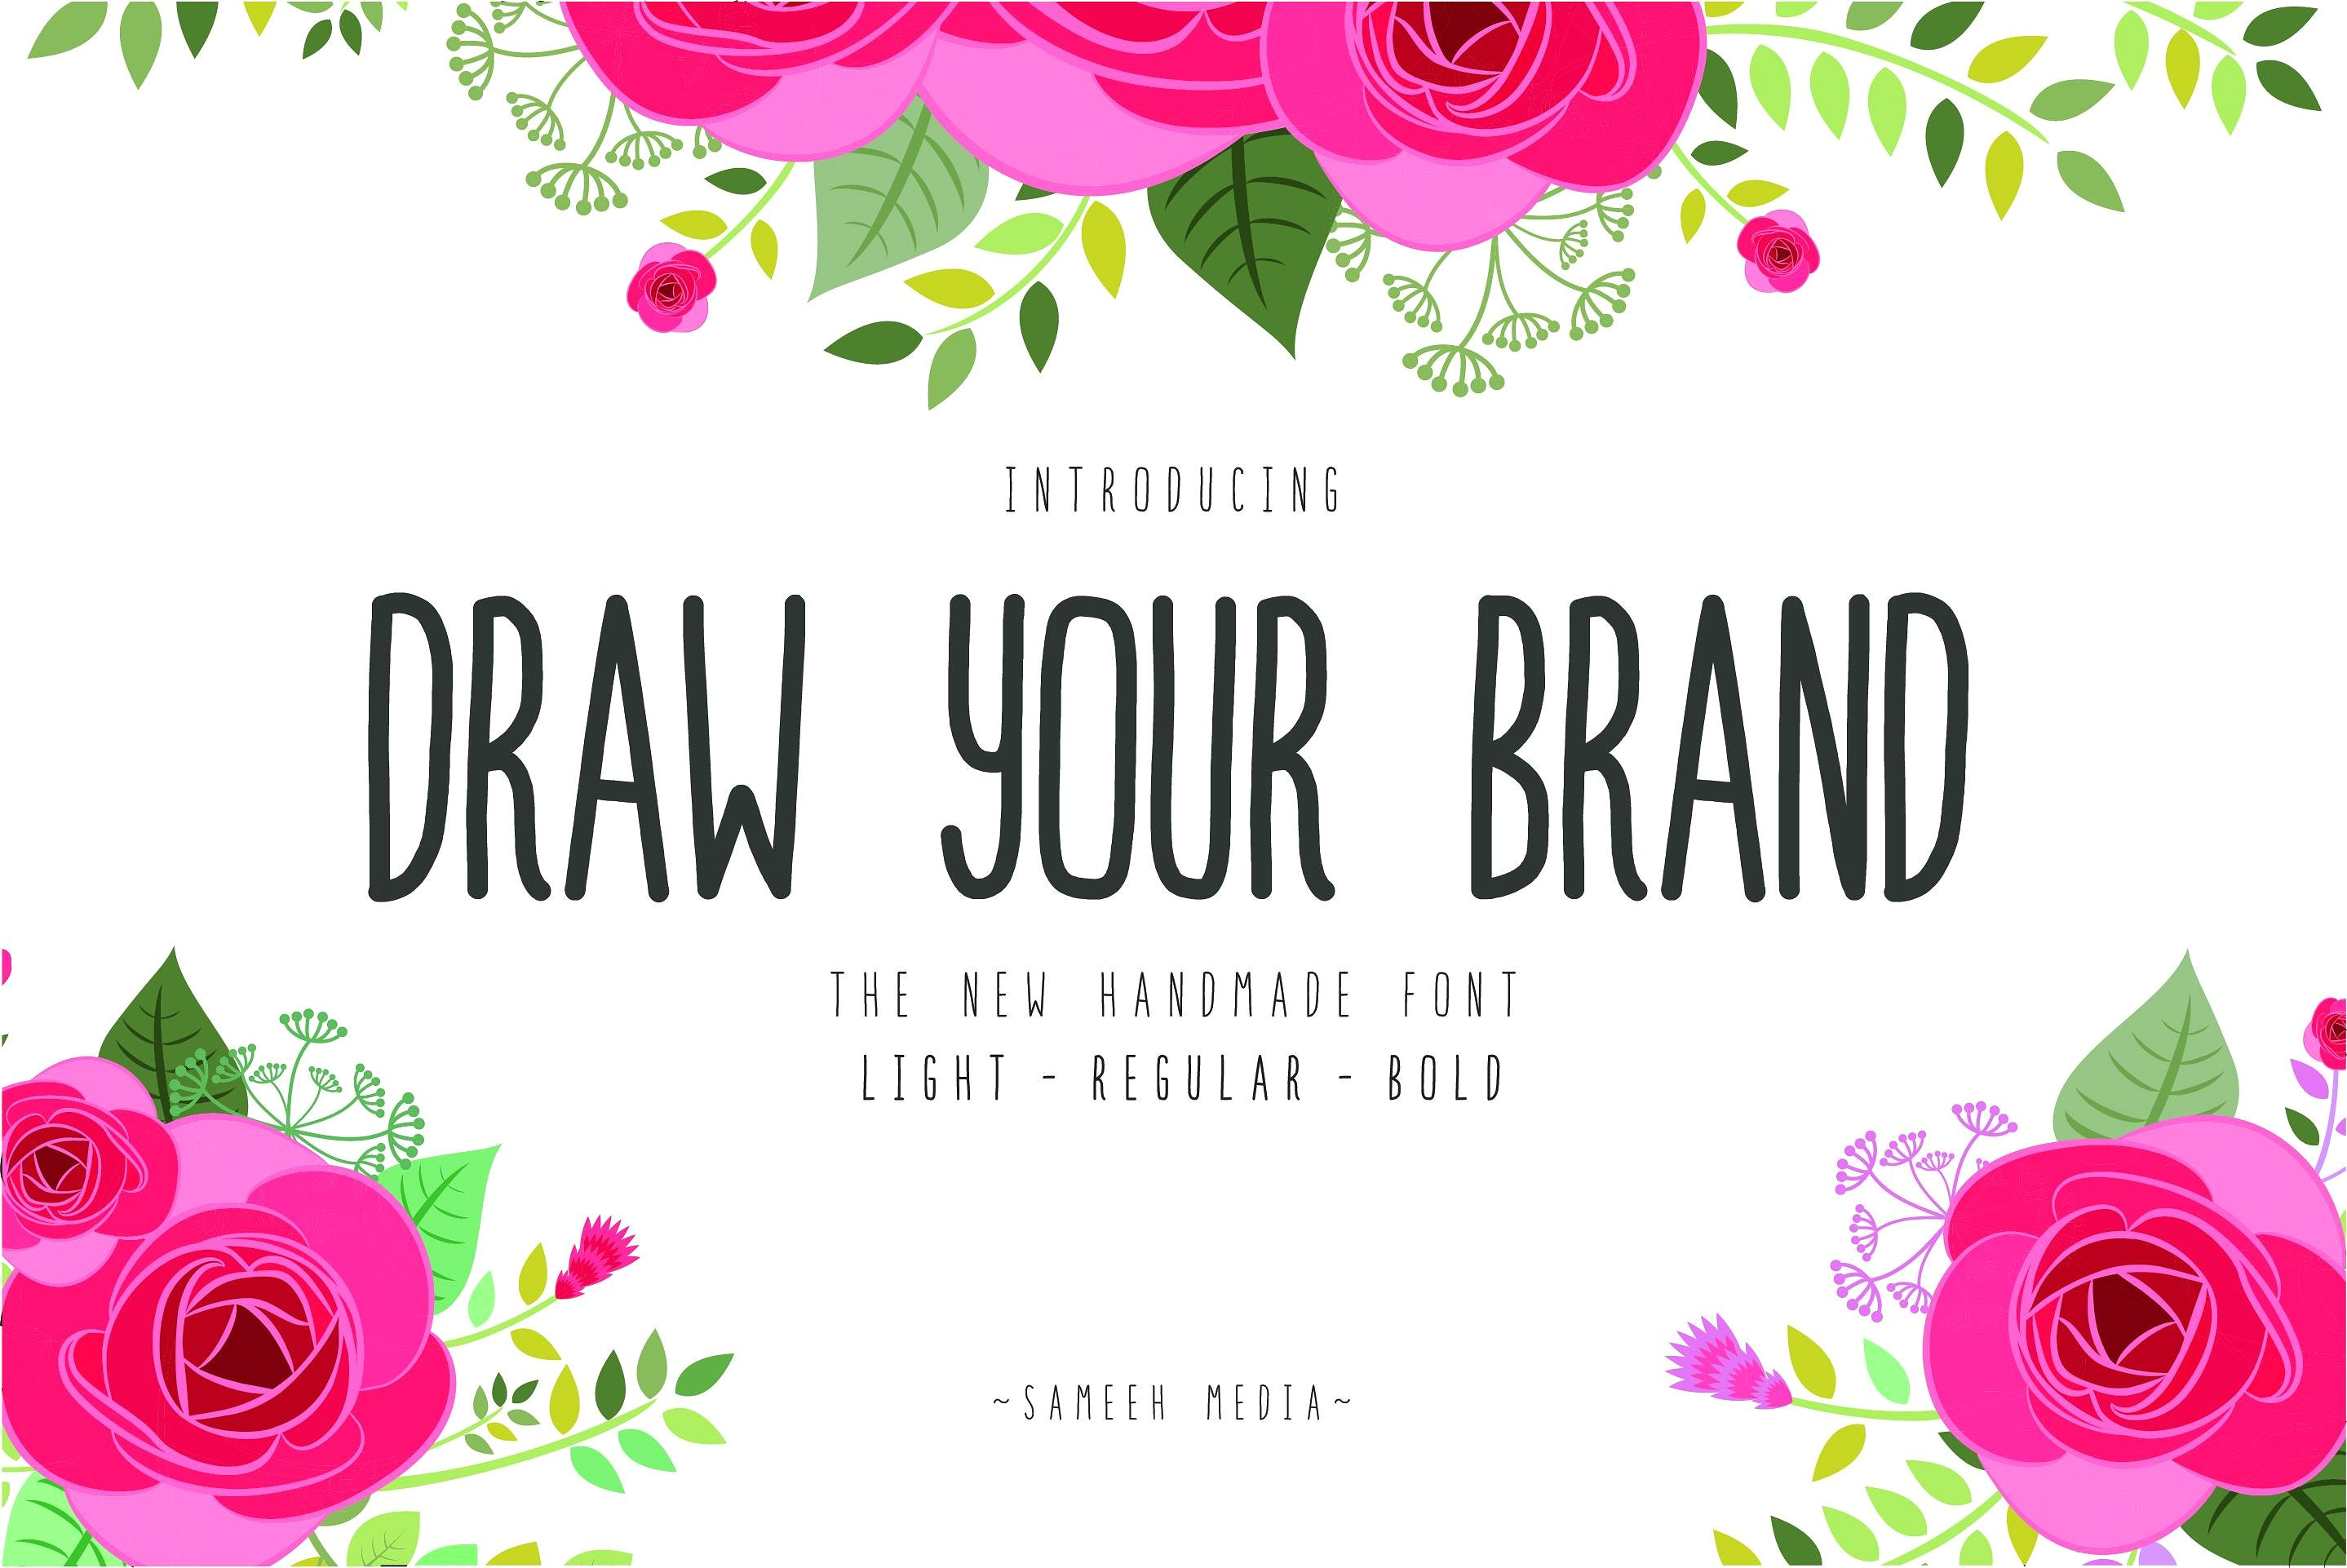 draw-your-brand-handmade